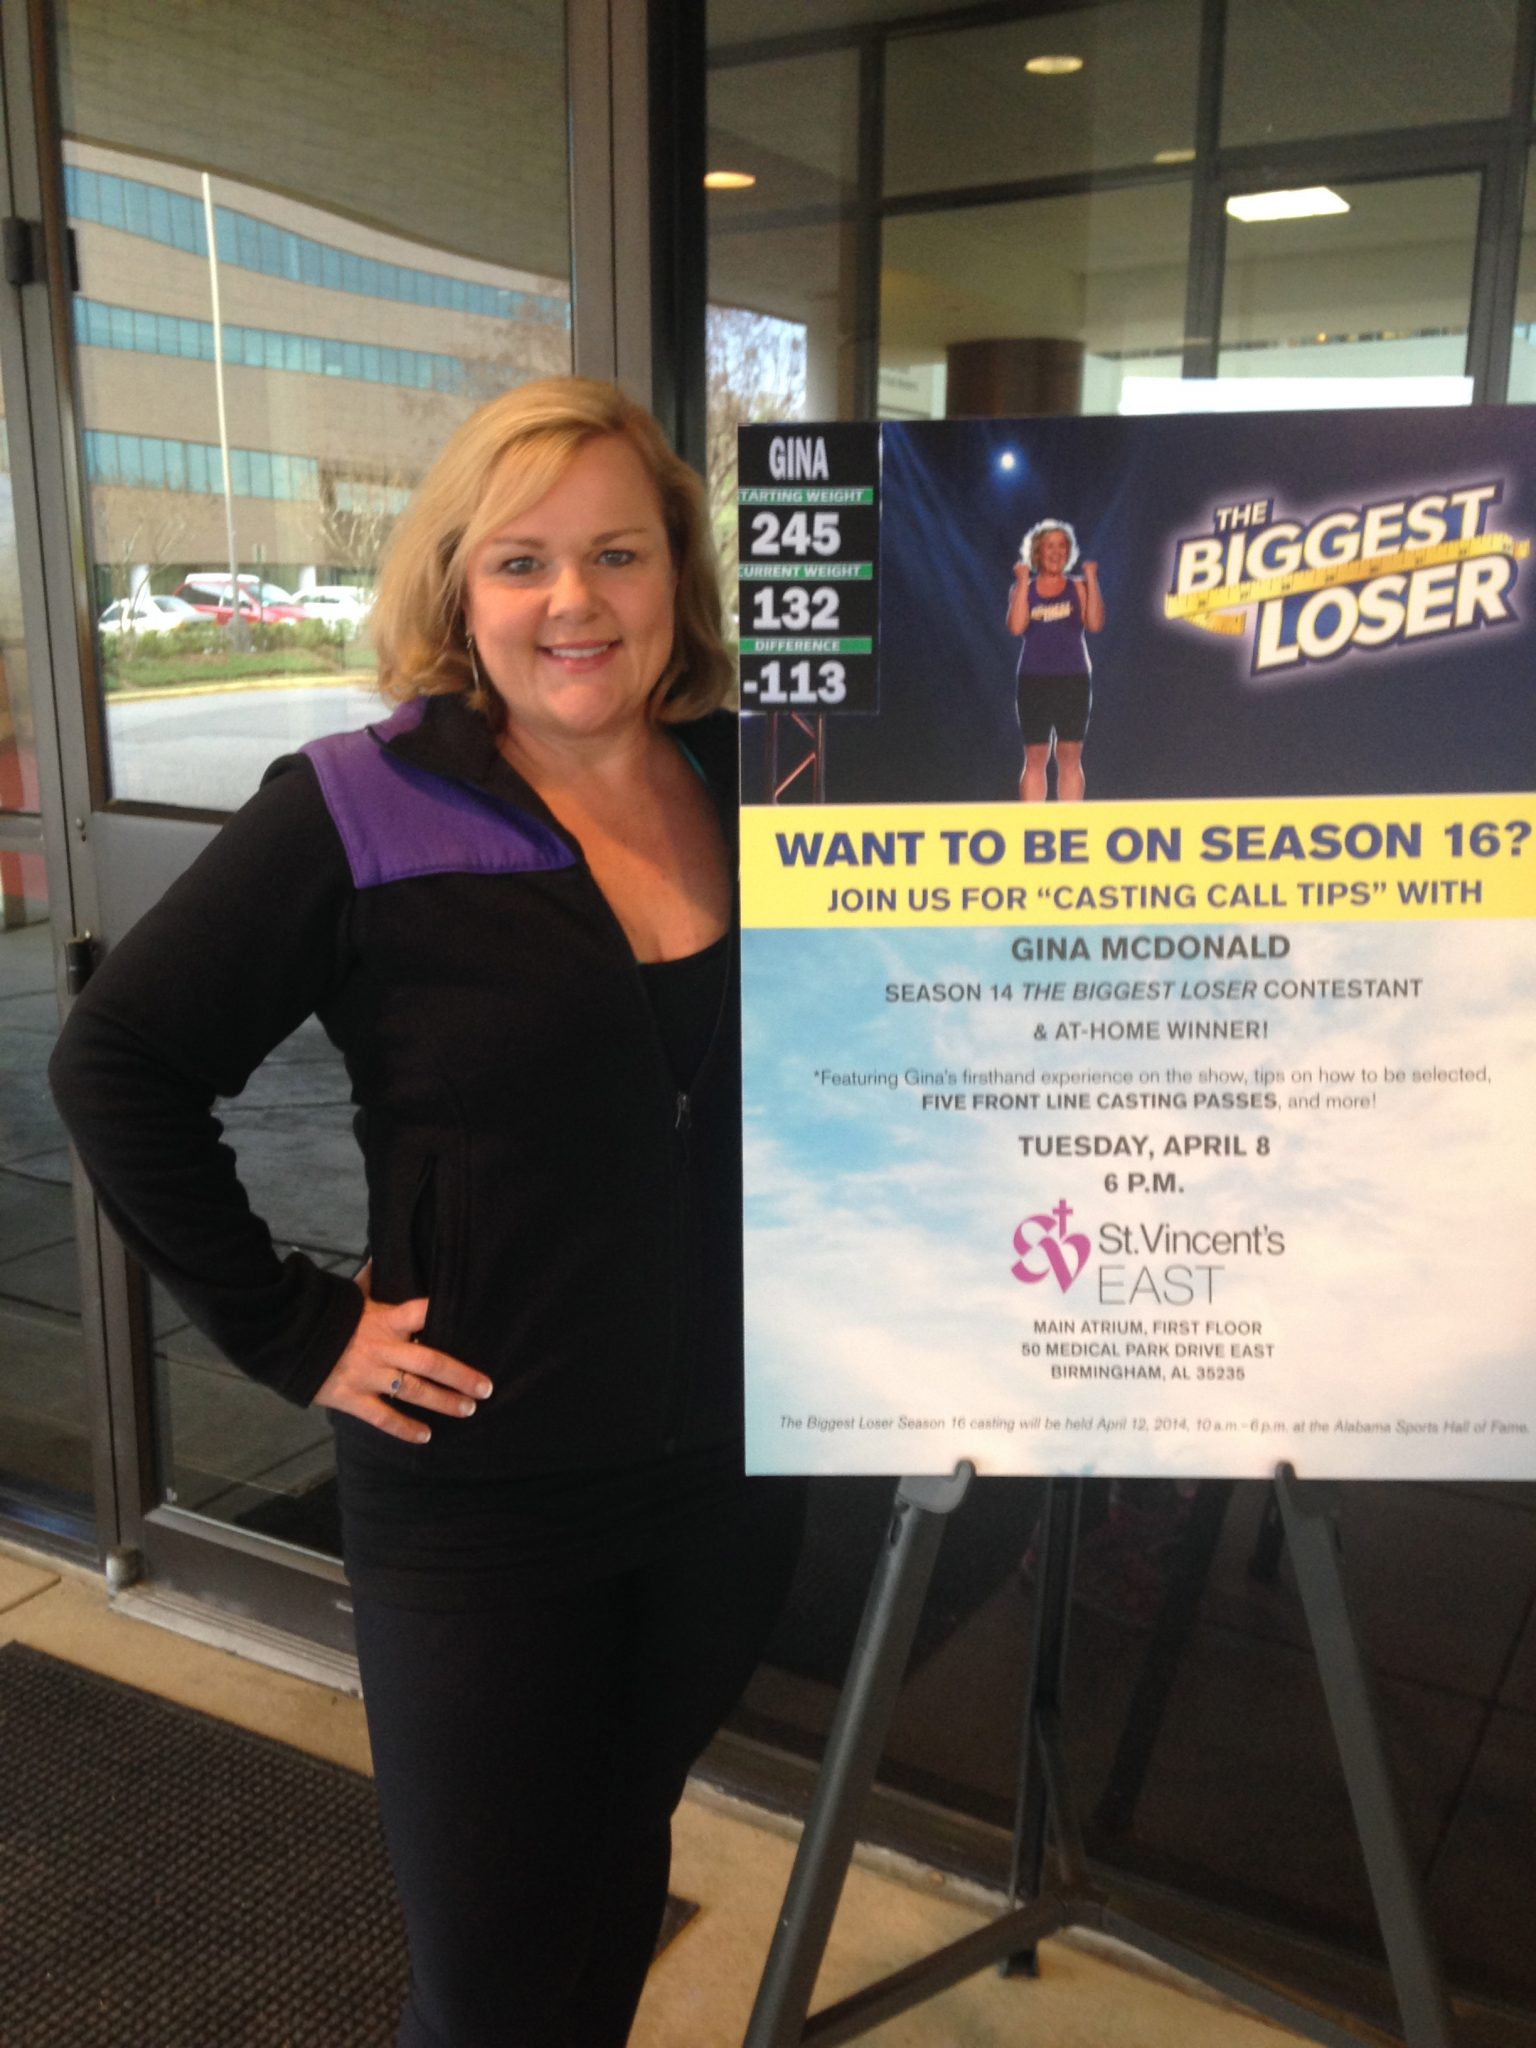 The Biggest Loser Interview with Gina McDonald - My Life ...